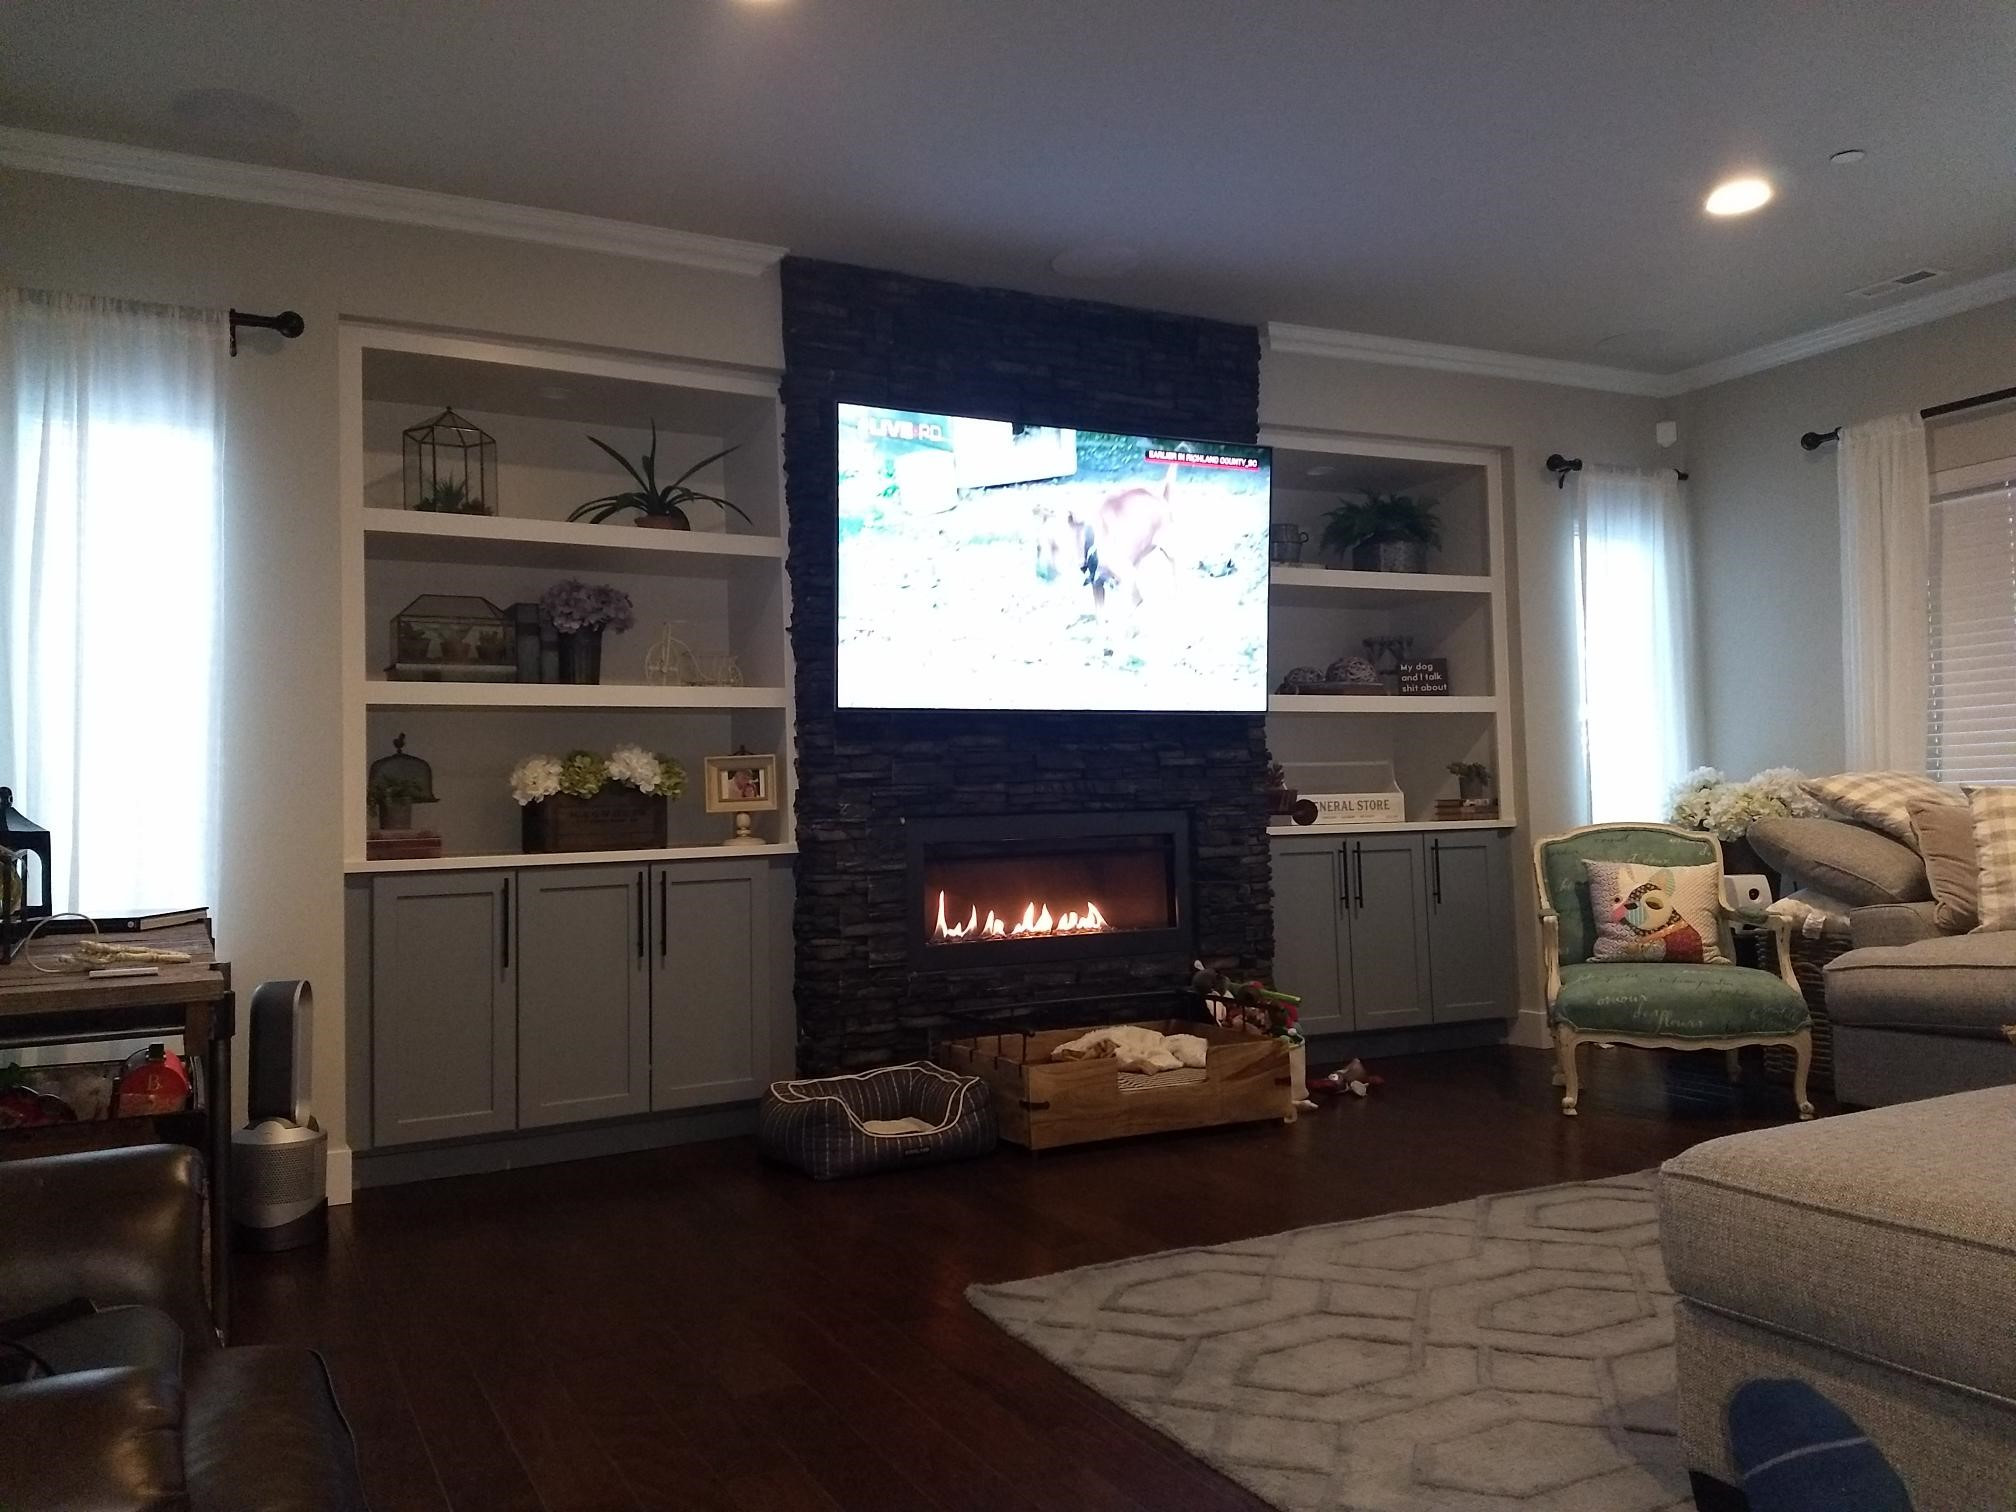 Expert Home Entertainment Installation In Lane Stevens For Amazing Results